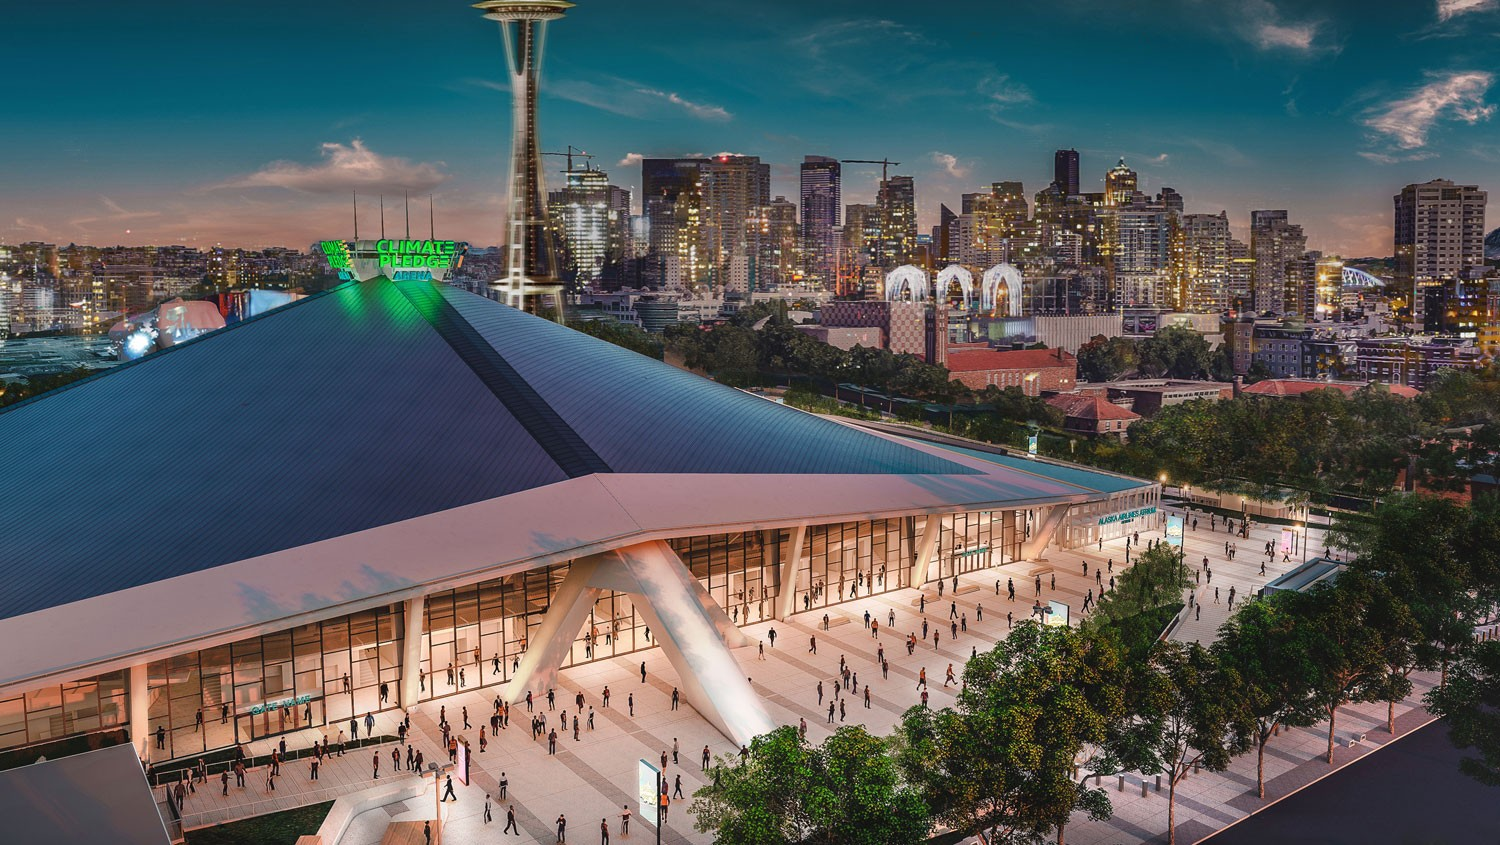 rendering of Climate Pledge Arena